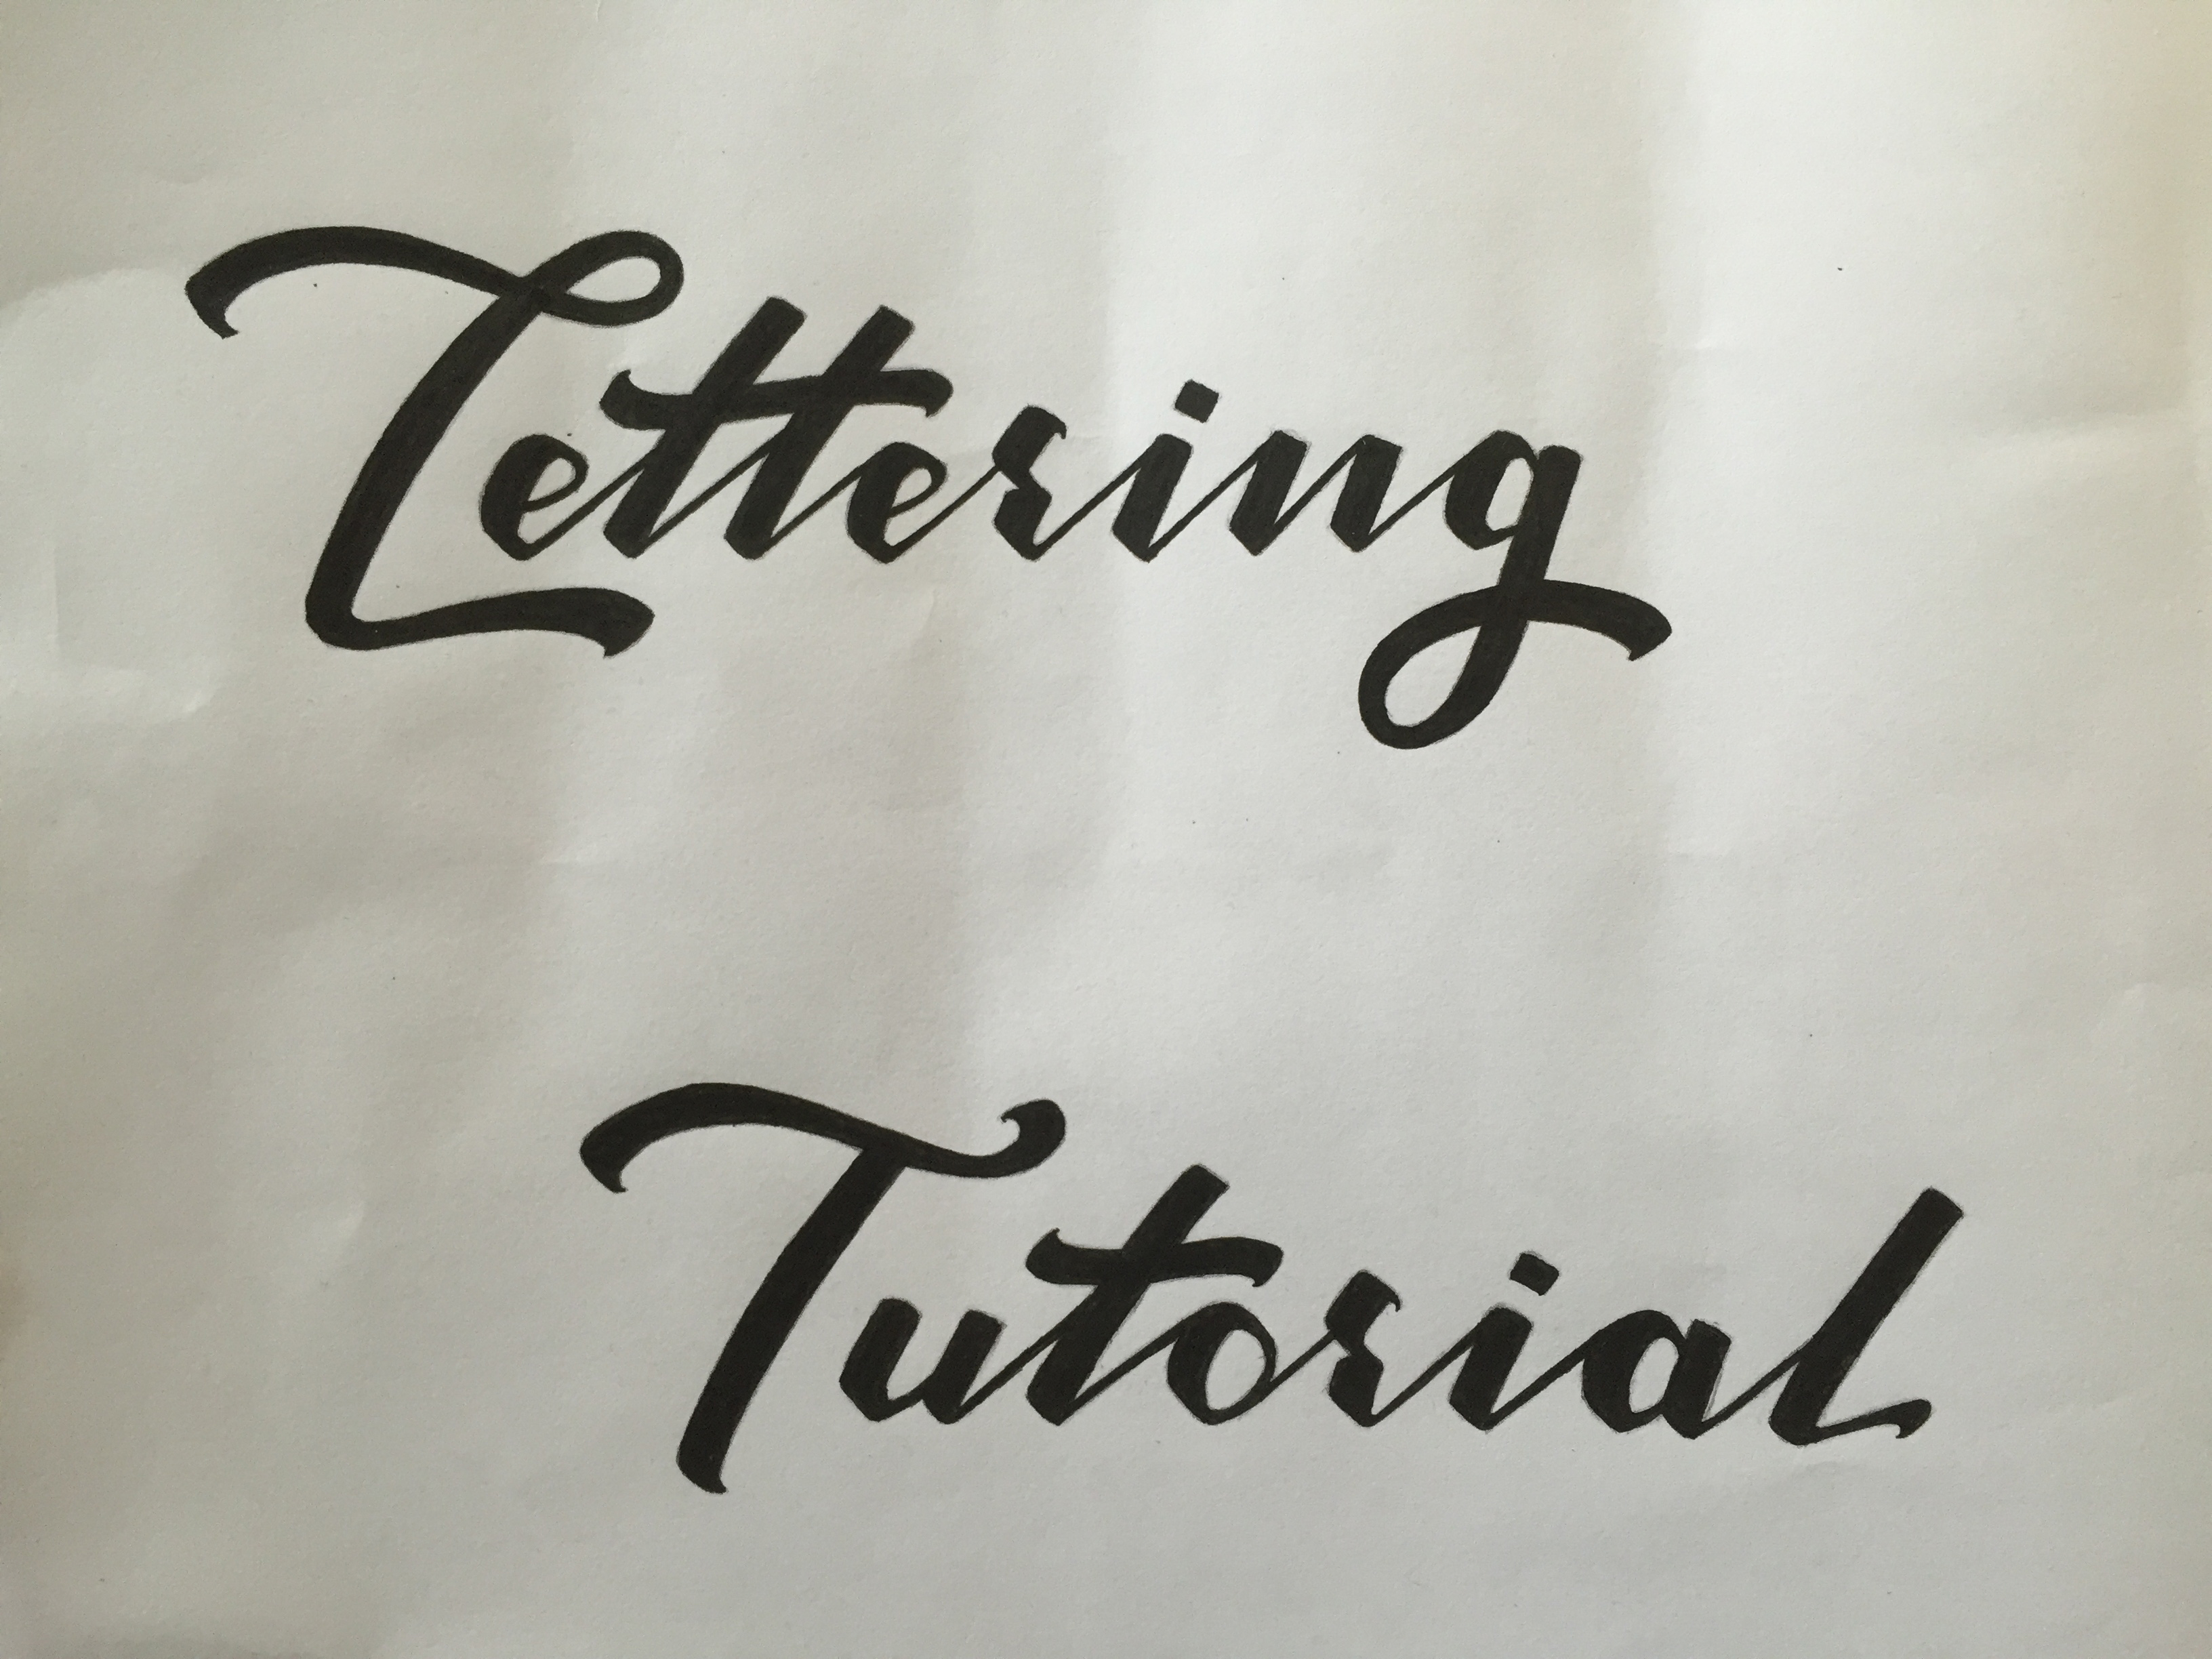 Calligraphy art getting started and lessons learned u smashing